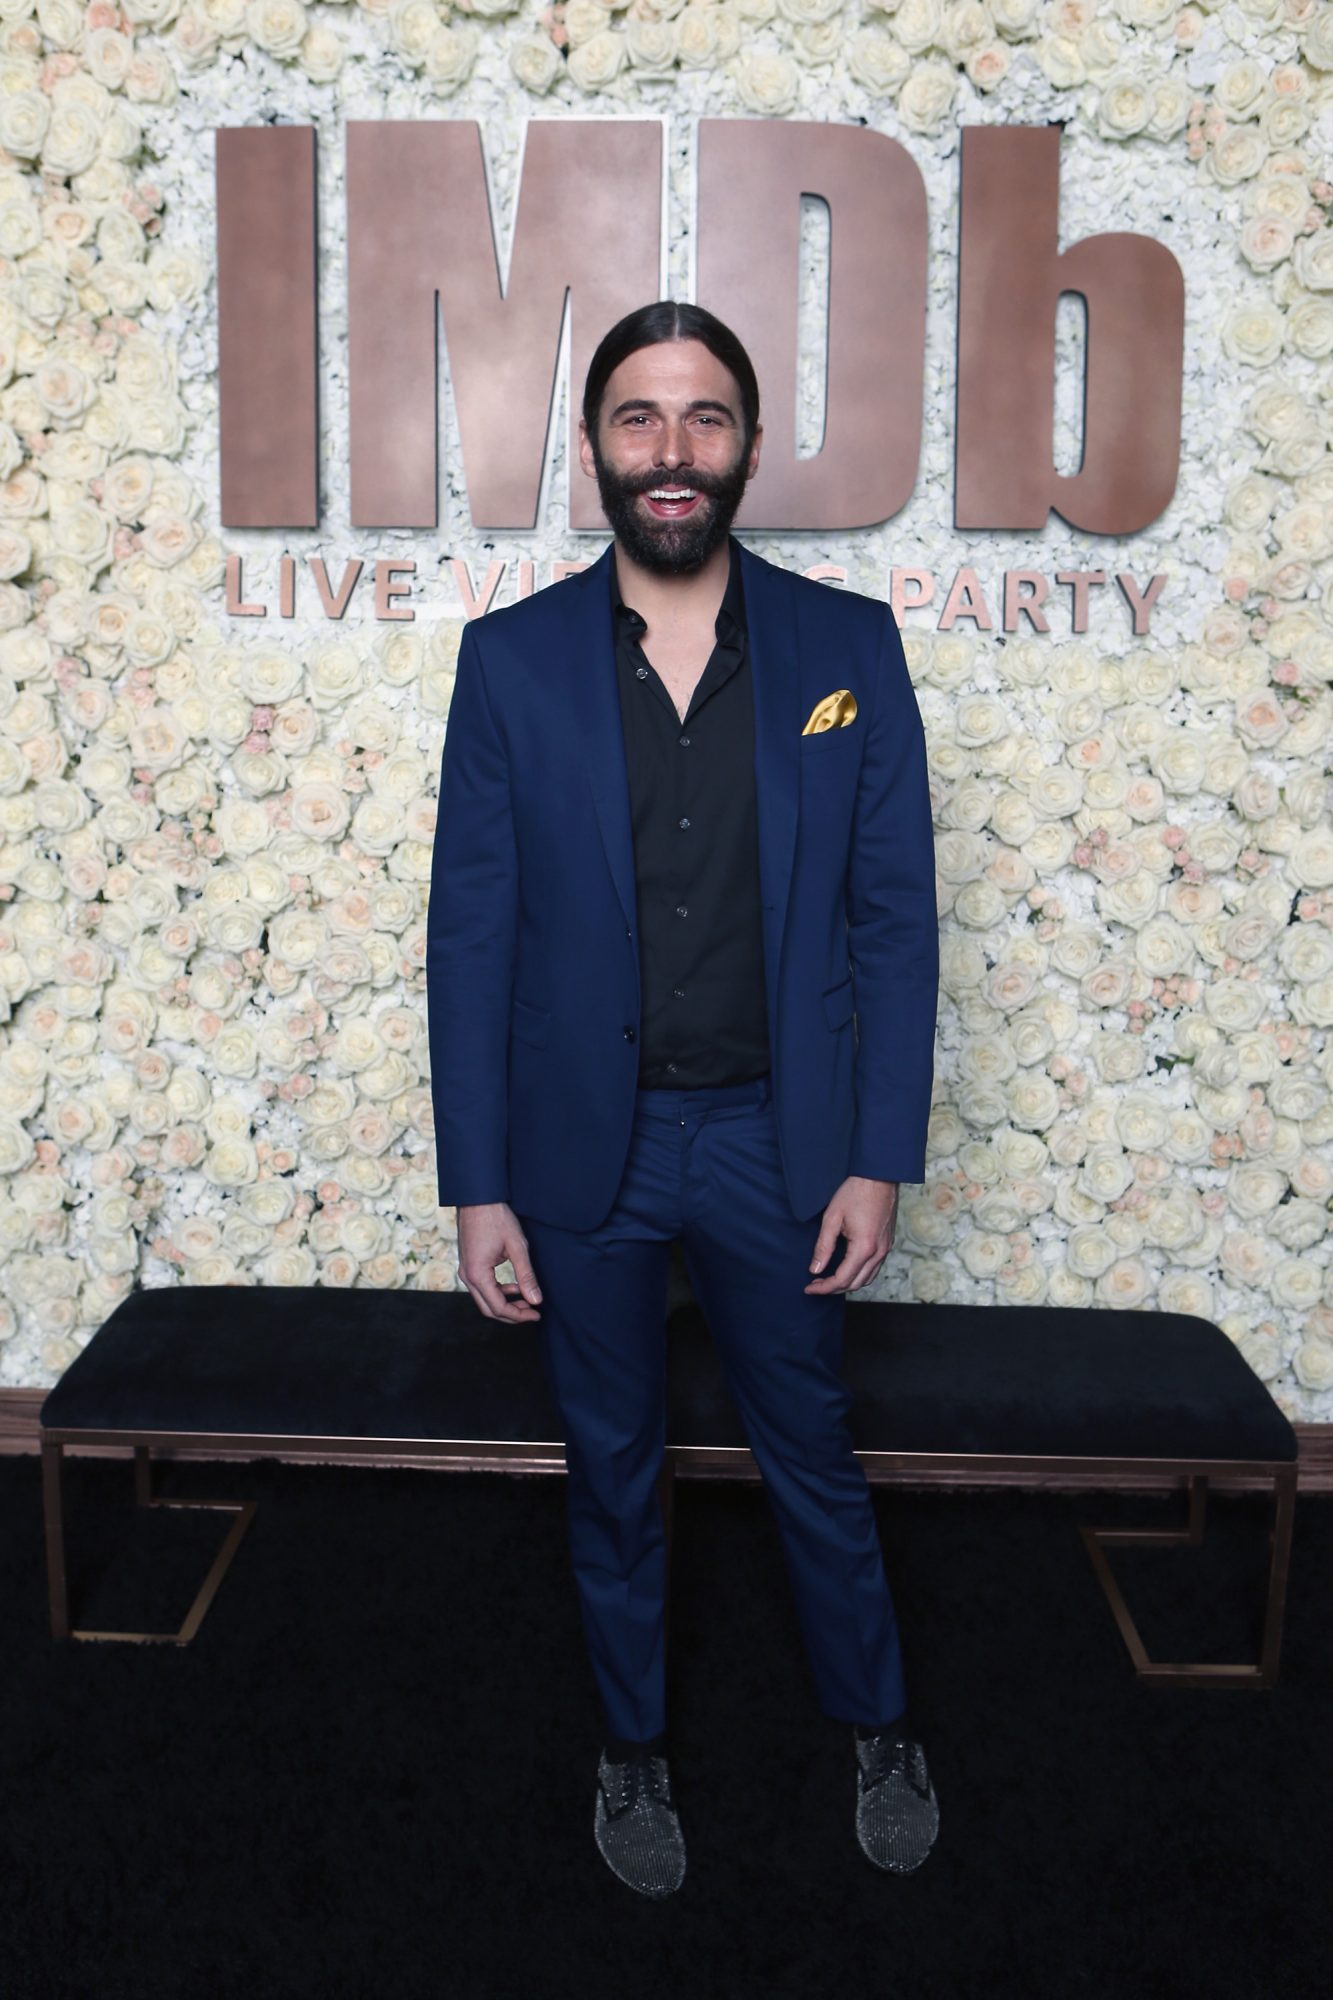 Queer Eye's Jonathan Van Ness Once Gained 70 Lbs. in 3 Months: 'I Just Could Not Stop Eating'